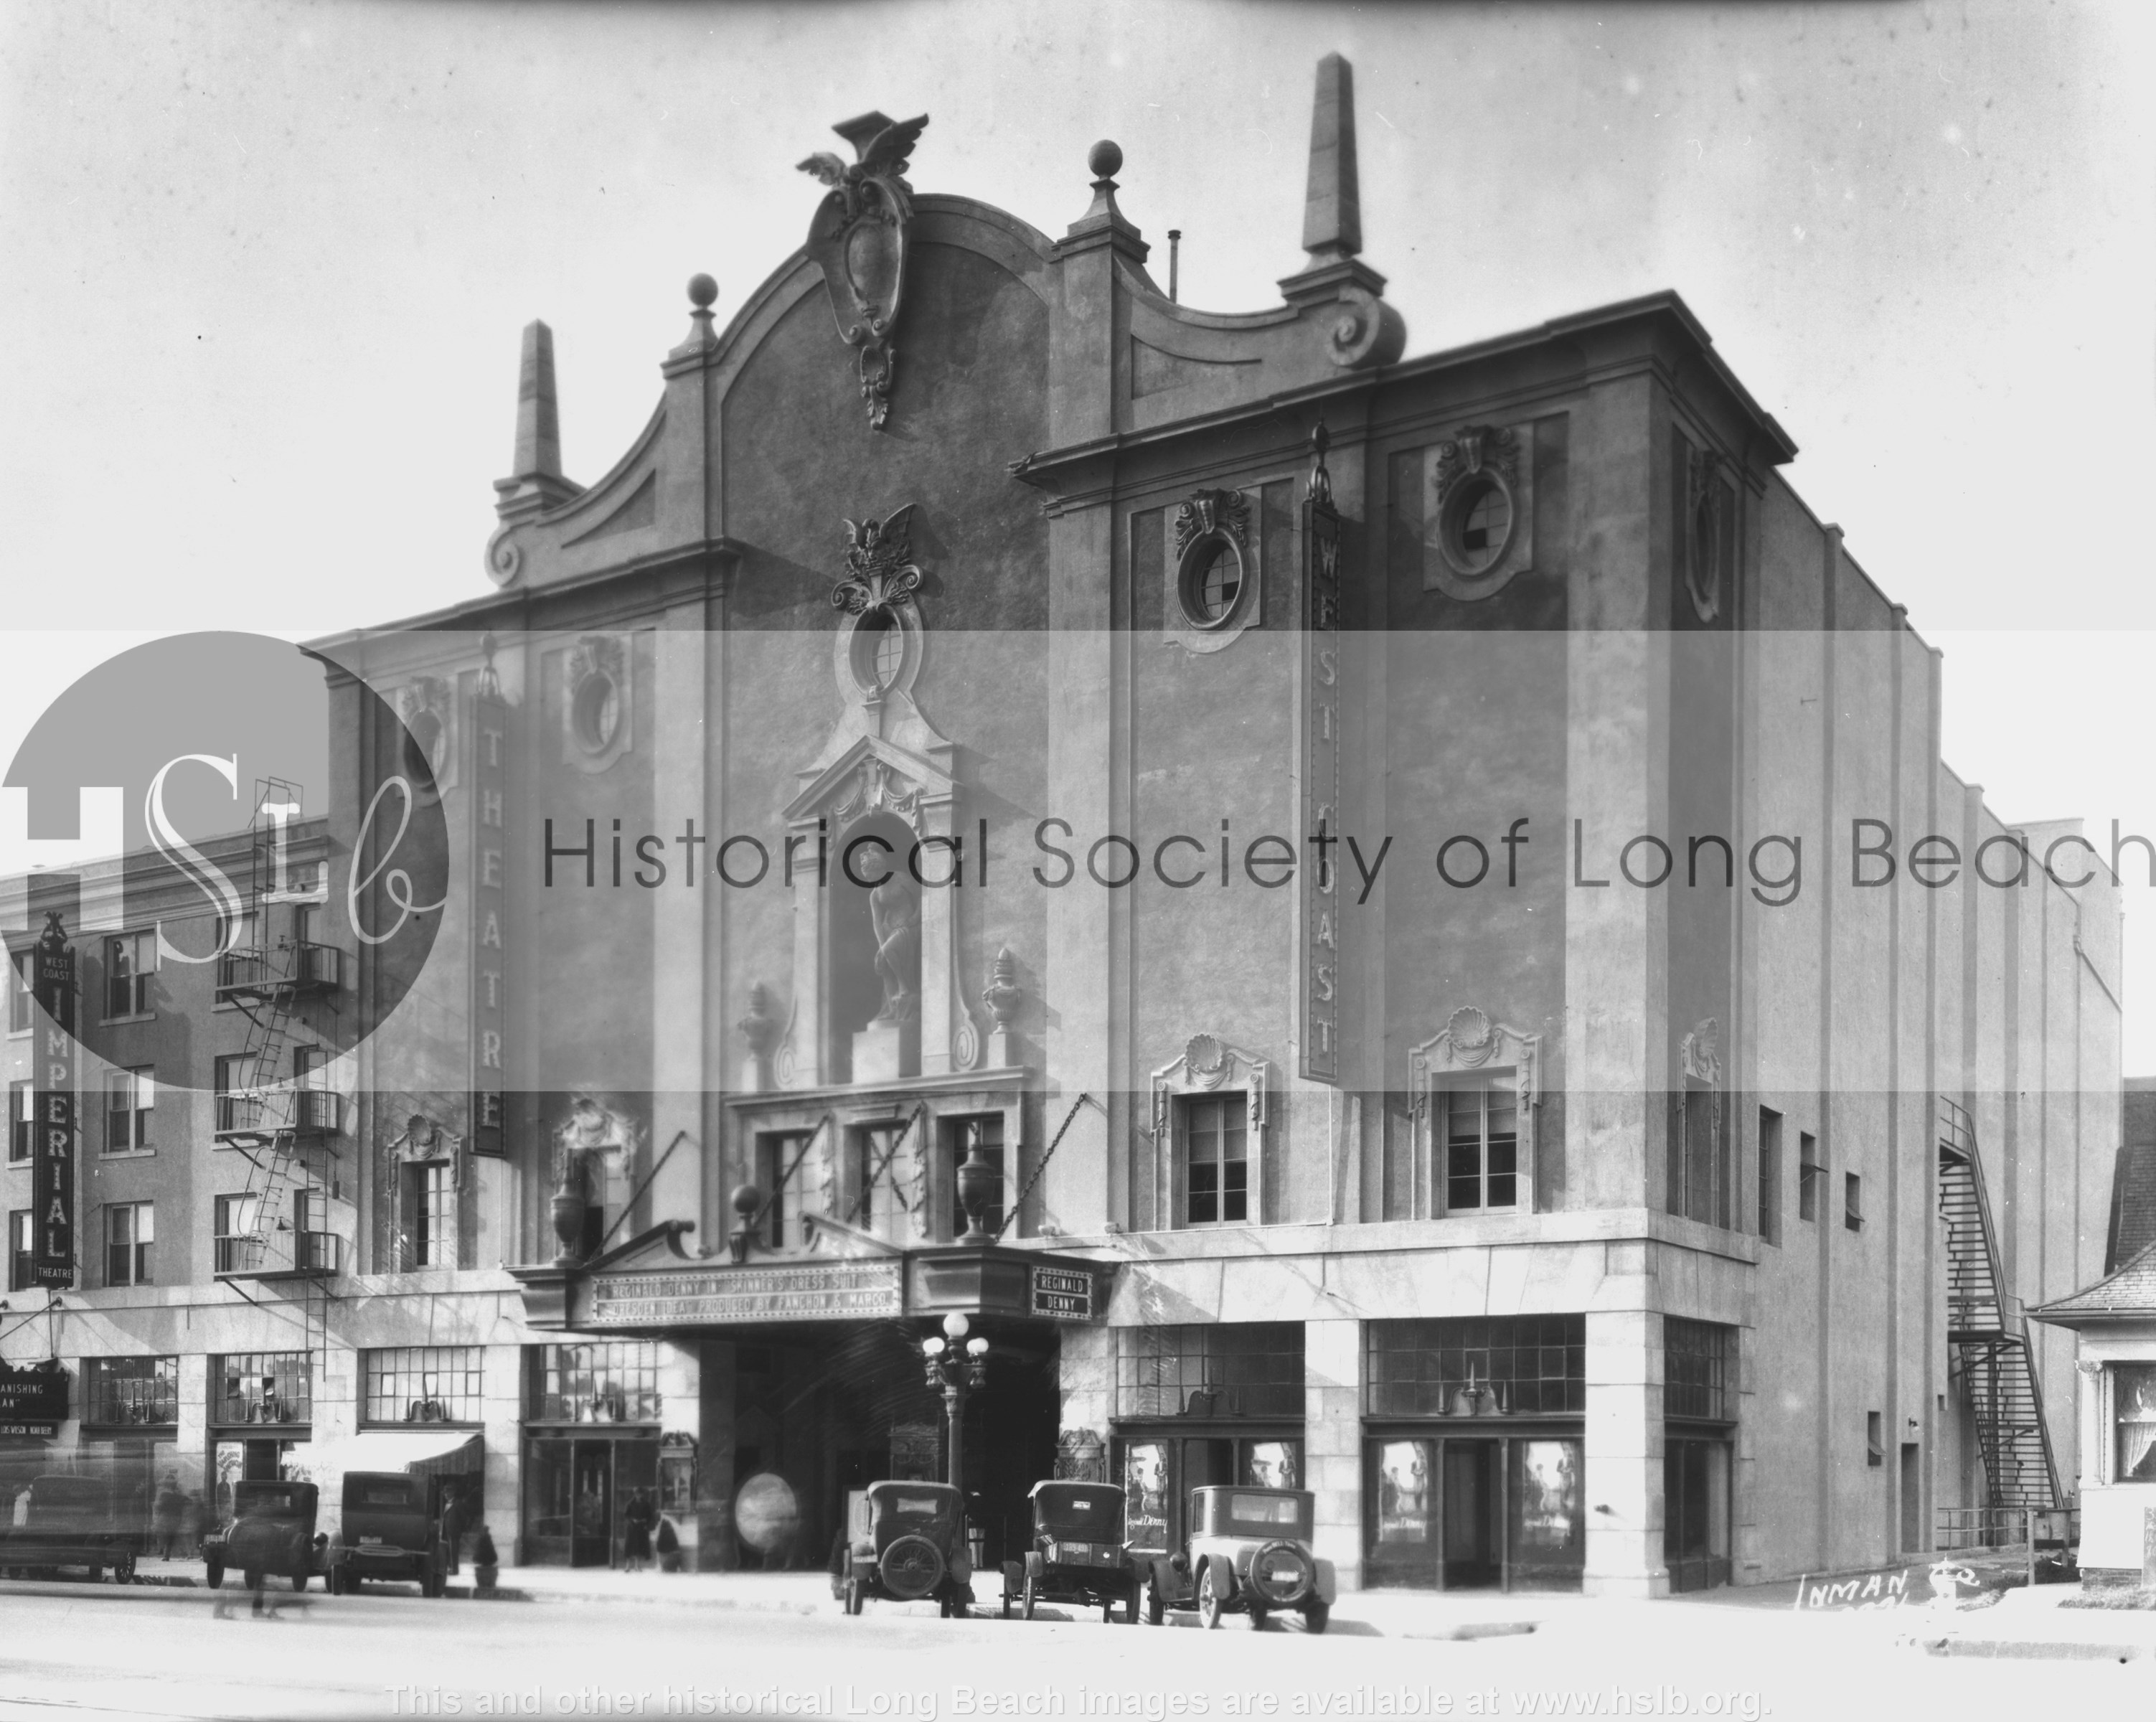 Fox West Coast Theatre, 1927 historical photo